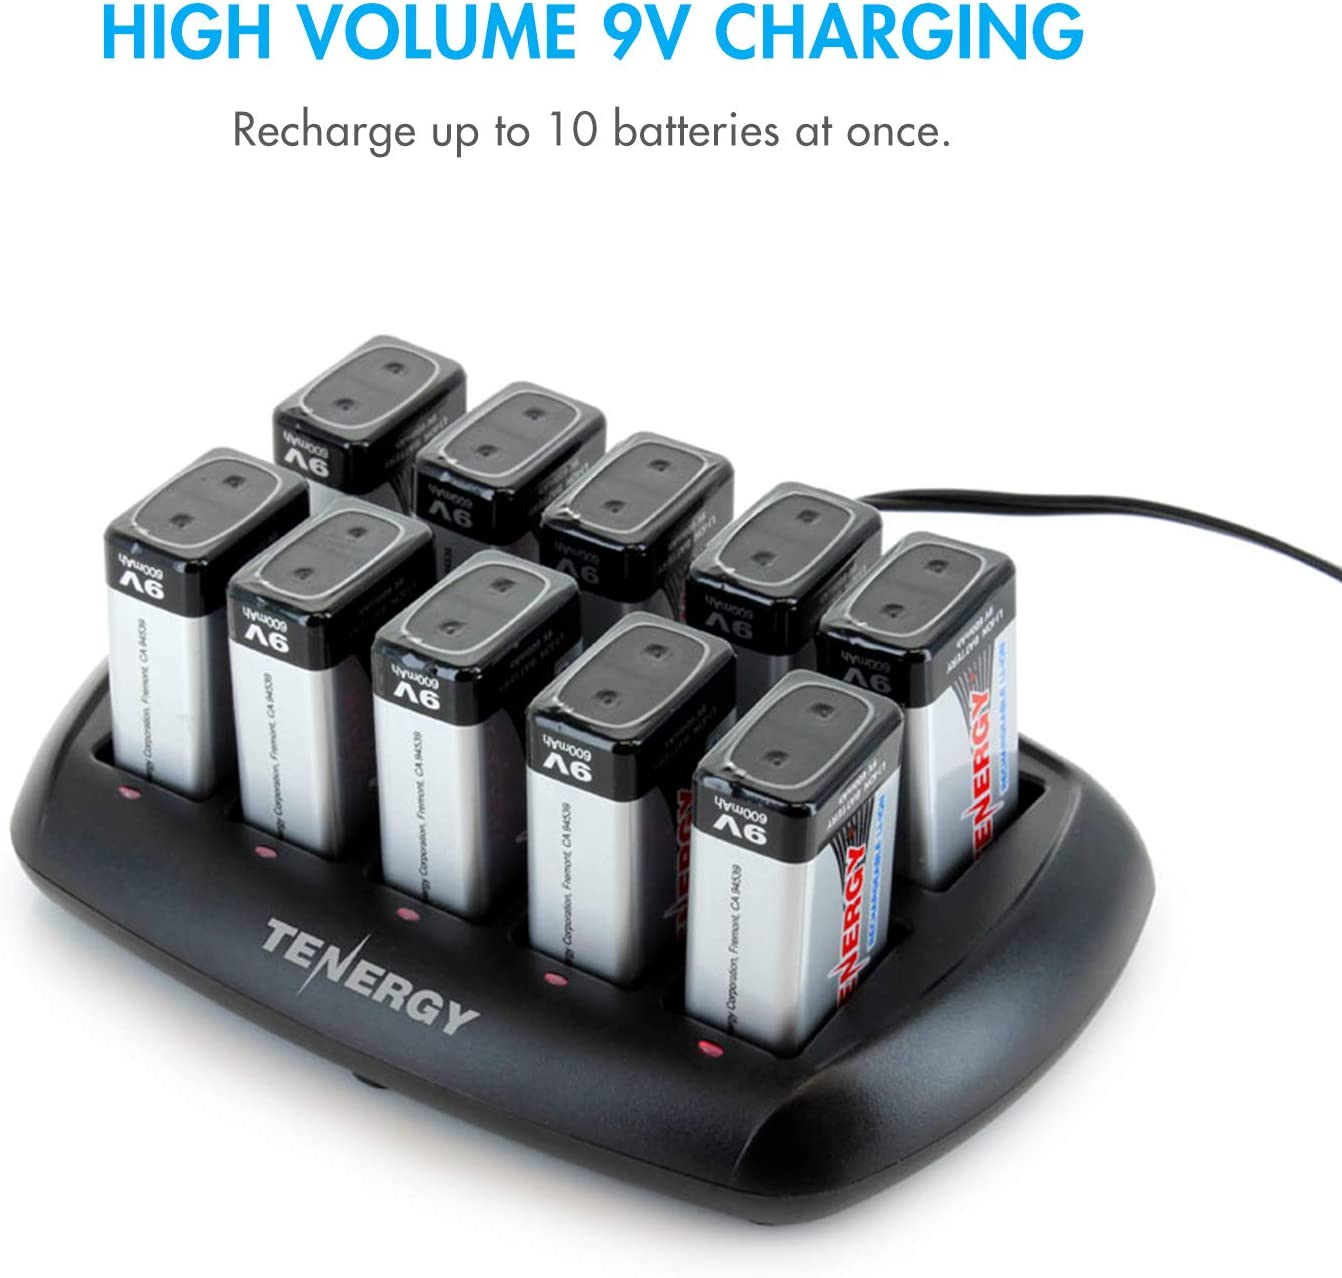 Tenergy TN295 10-Bay Smart 9V Battery Charger for Li-ion Rechargeable Battery